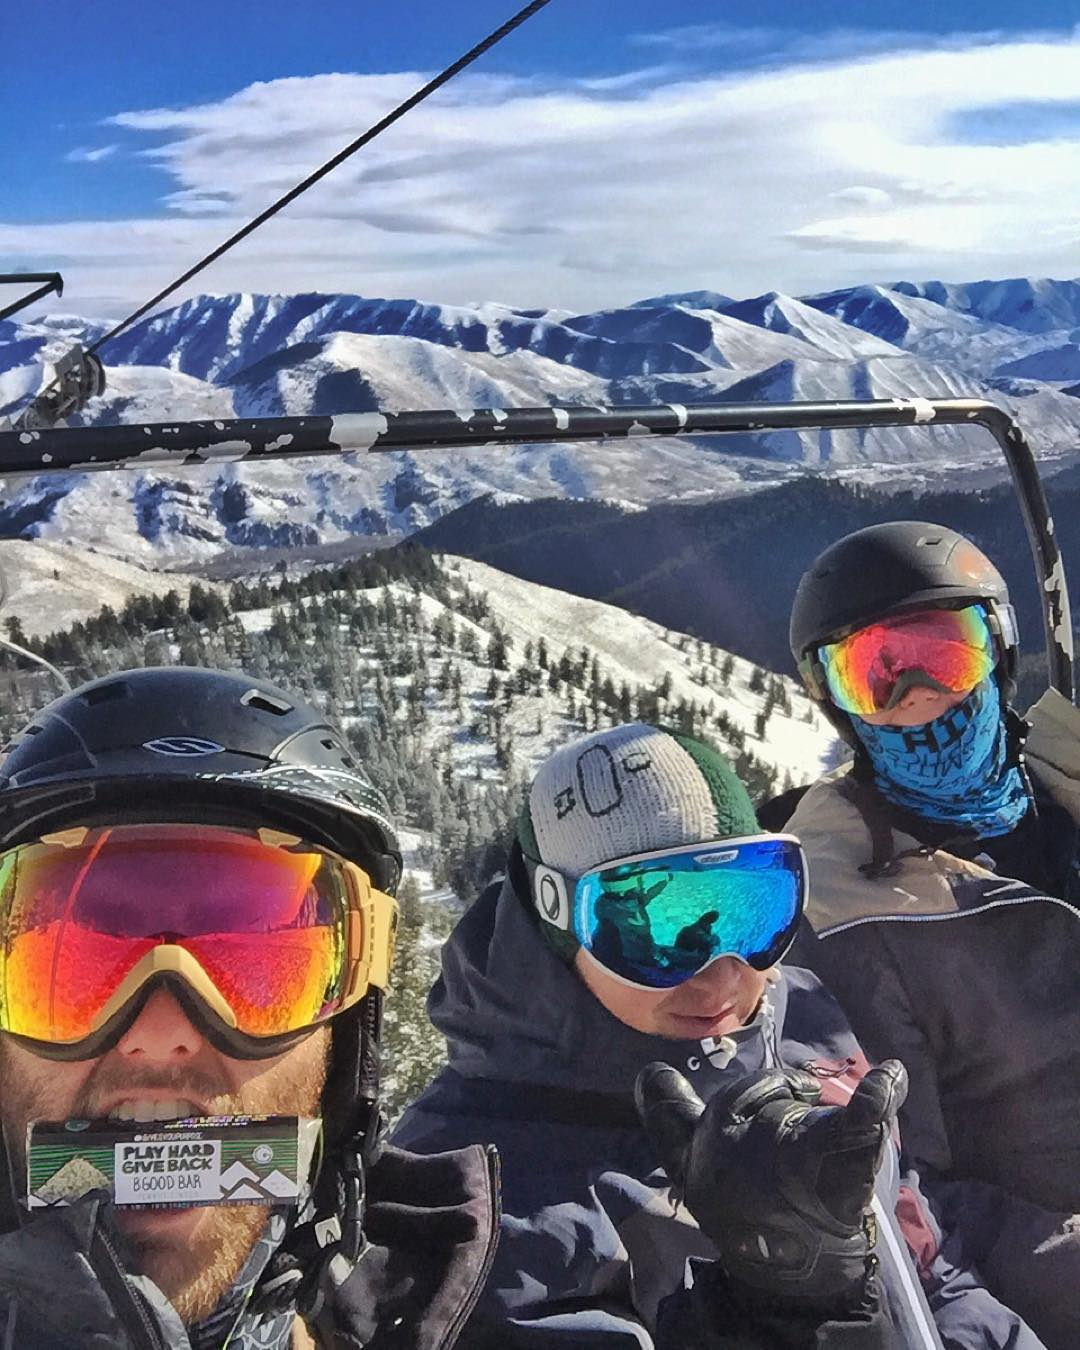 #happythanksgivingyall !!! We are SO thankful to spend the day with family and friends doing what we love here in @sunvalley #skiing! Have a fun a safe weekend everyone